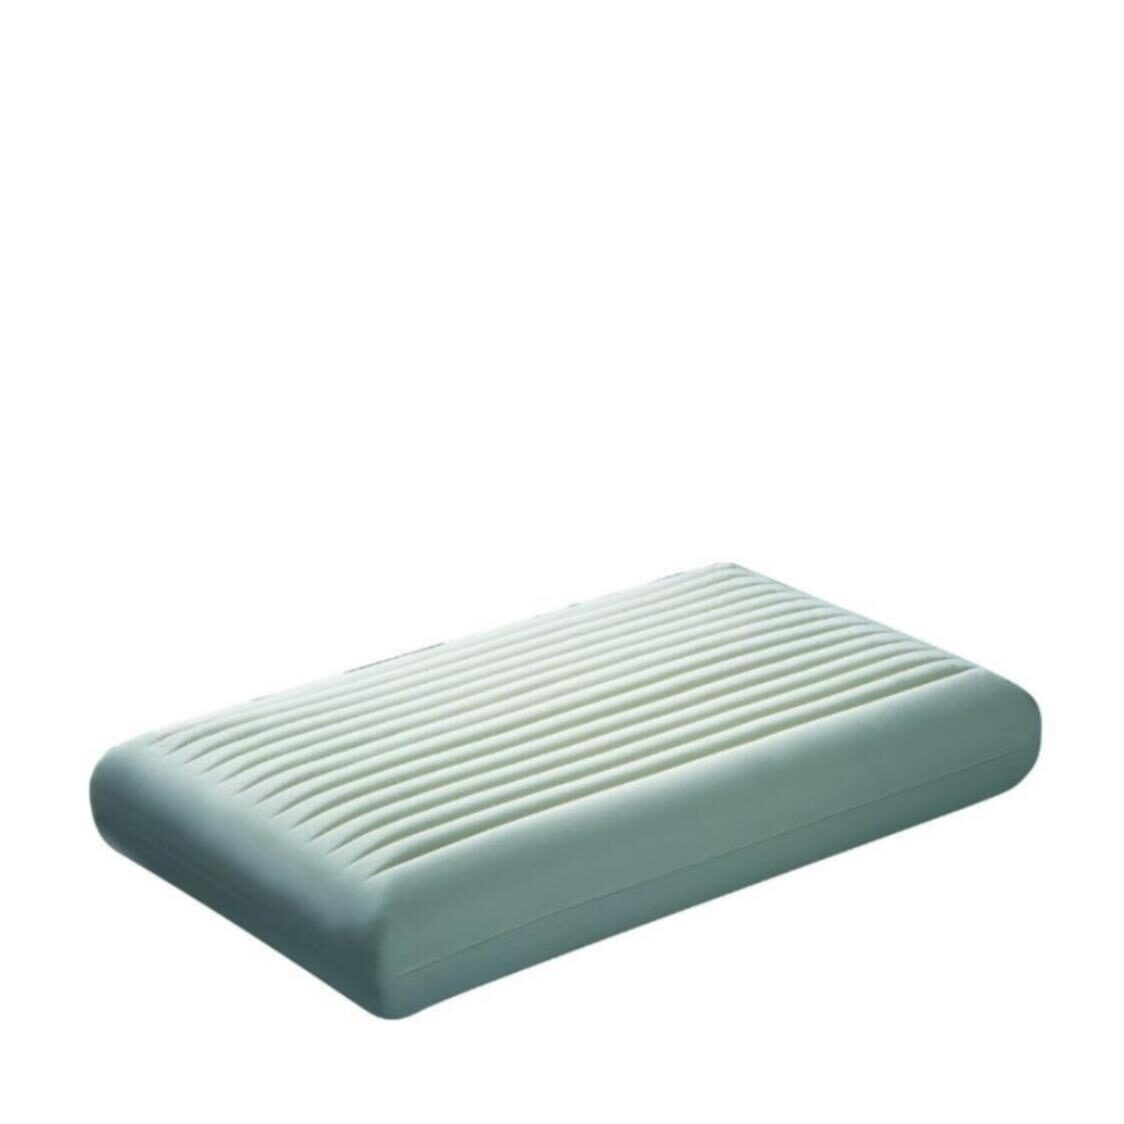 Dentons Therapeutic Pillow Wave Classic